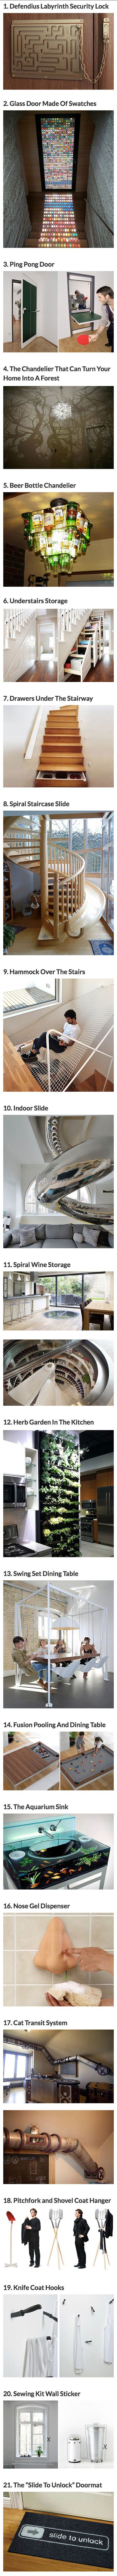 Love the doorlock , swing table and sink more than the others.